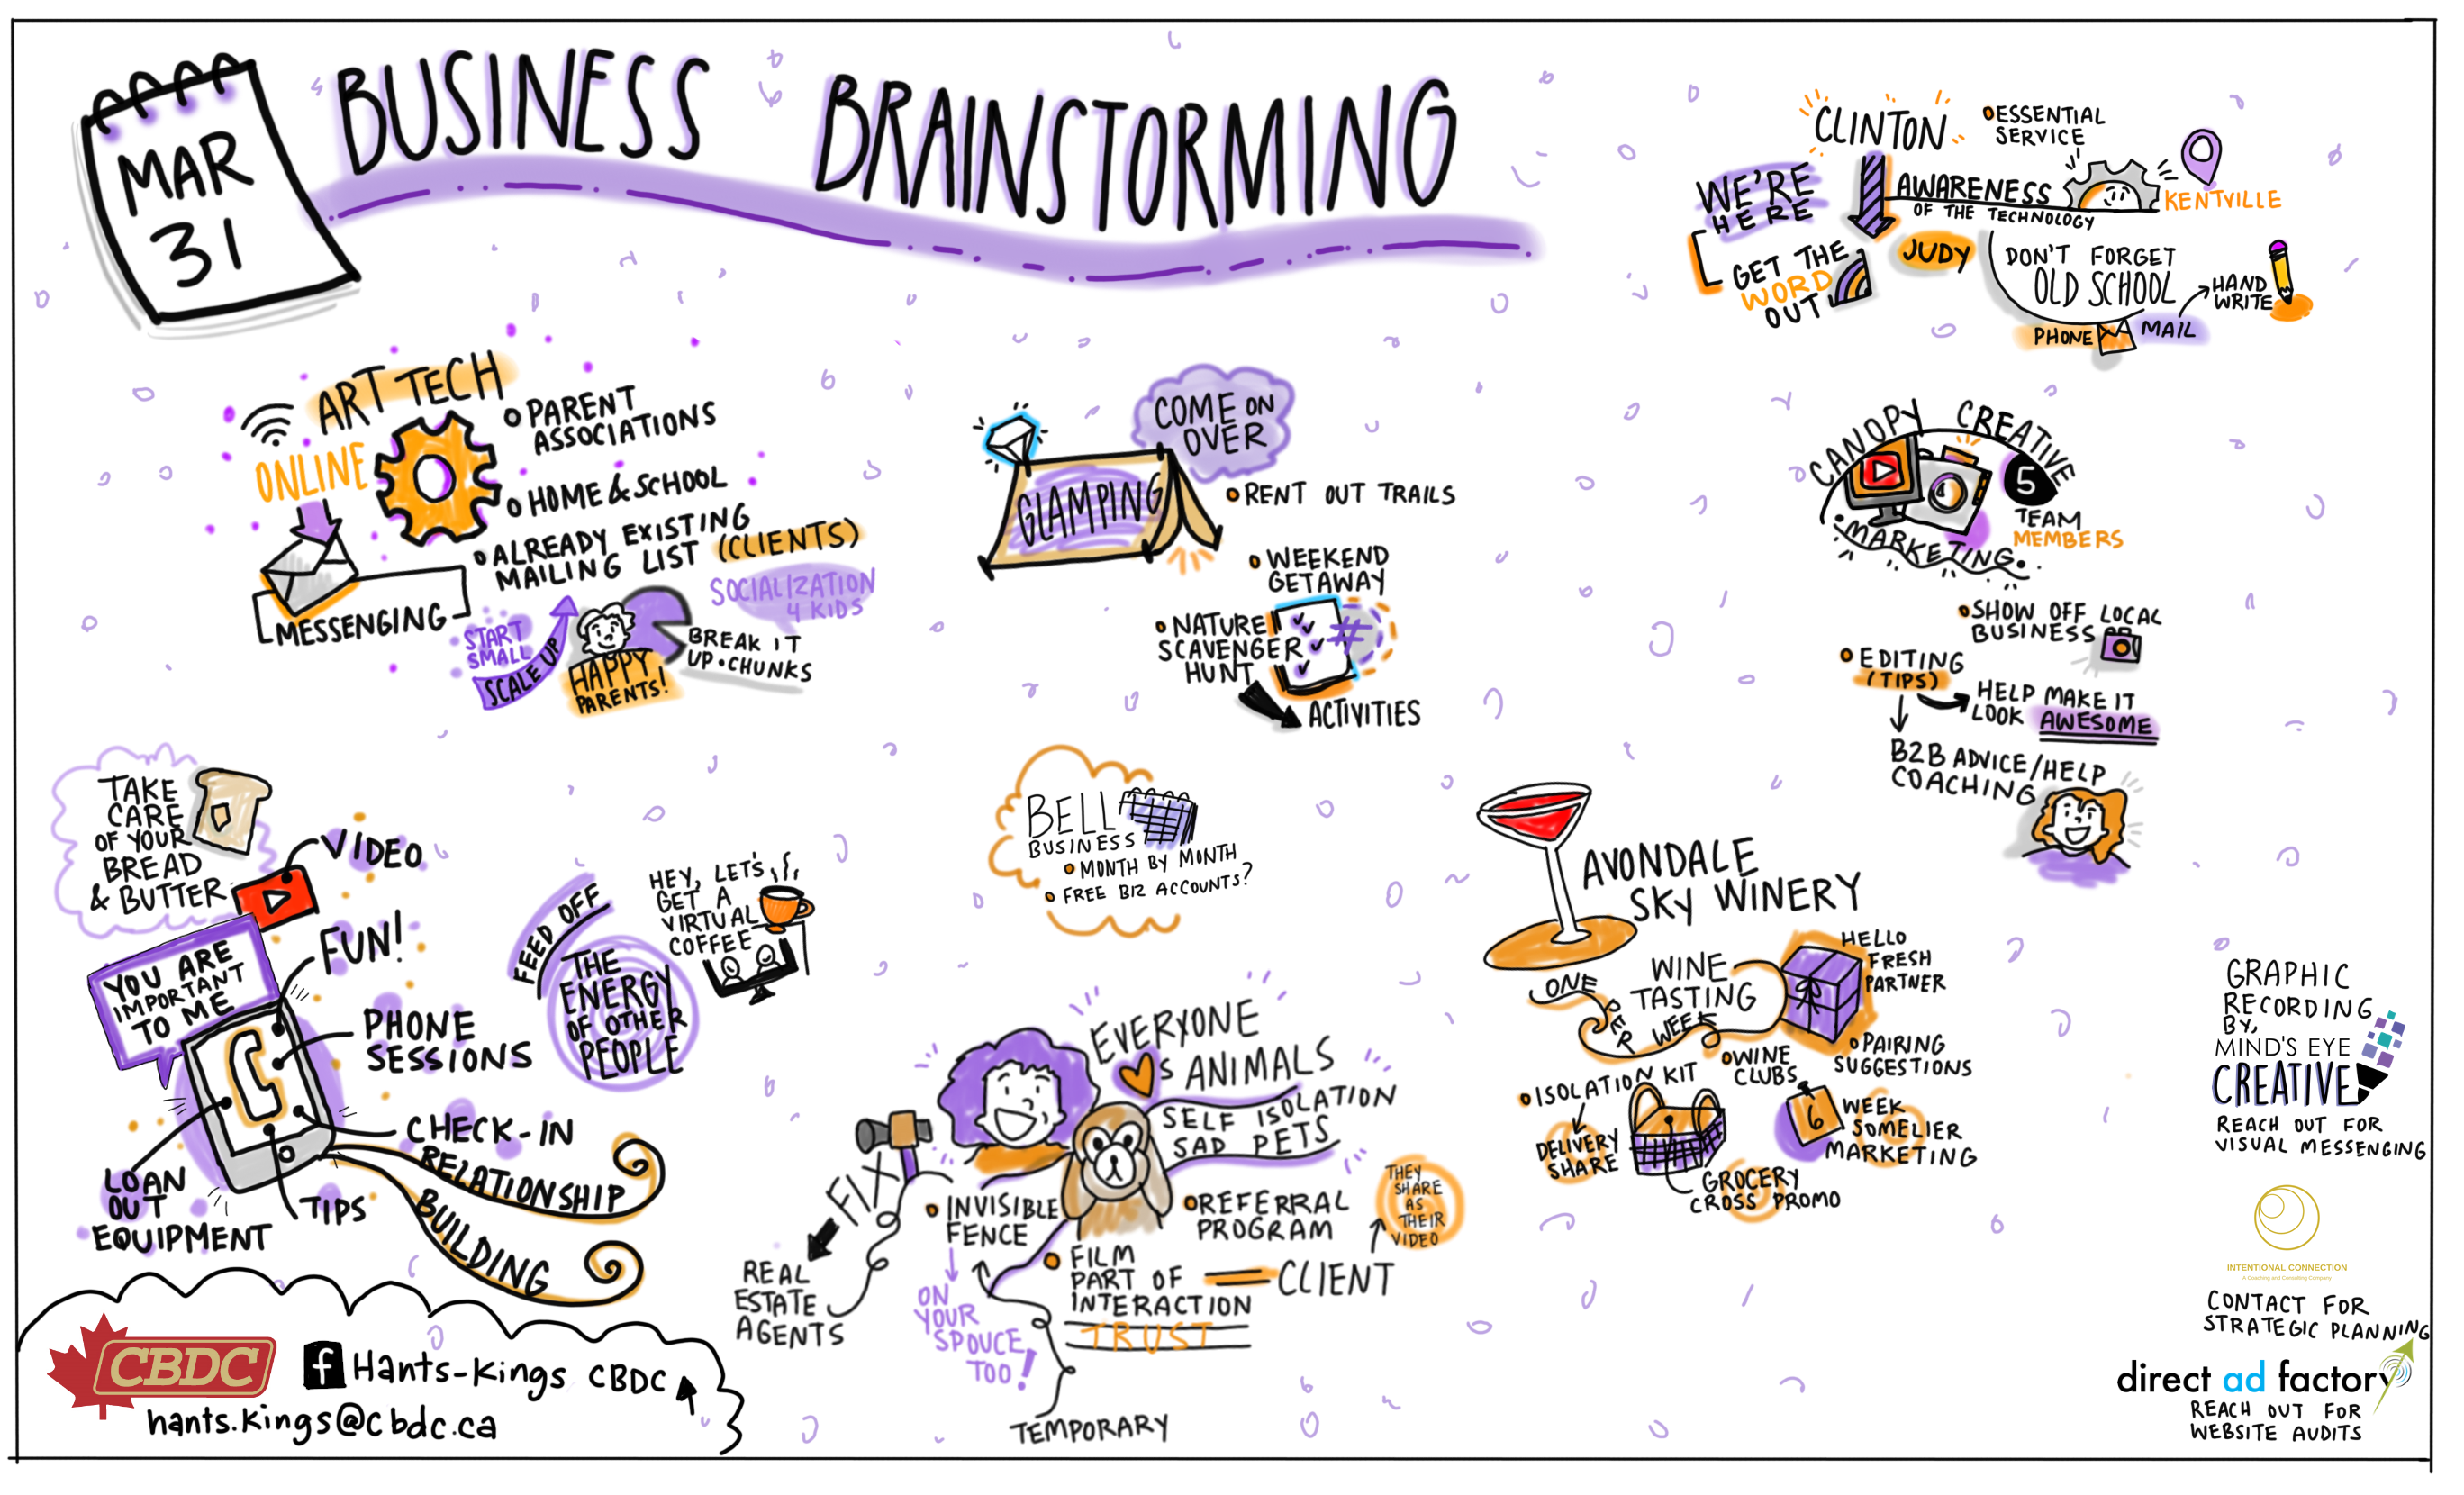 Business Brainstorming graphic recording by Minds Eye Creative